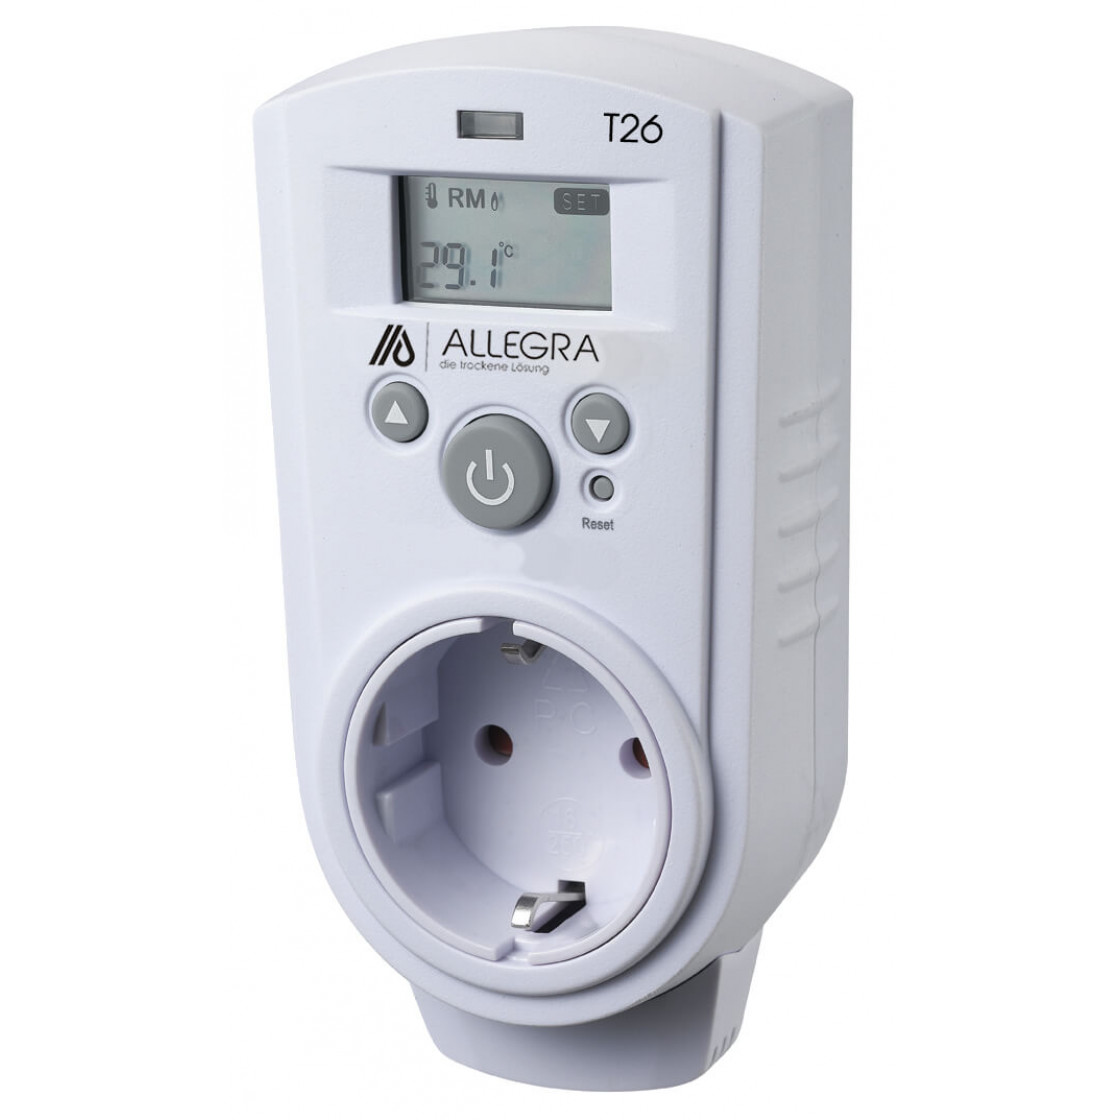 ALLEGRA Steckdosenthermostat T26